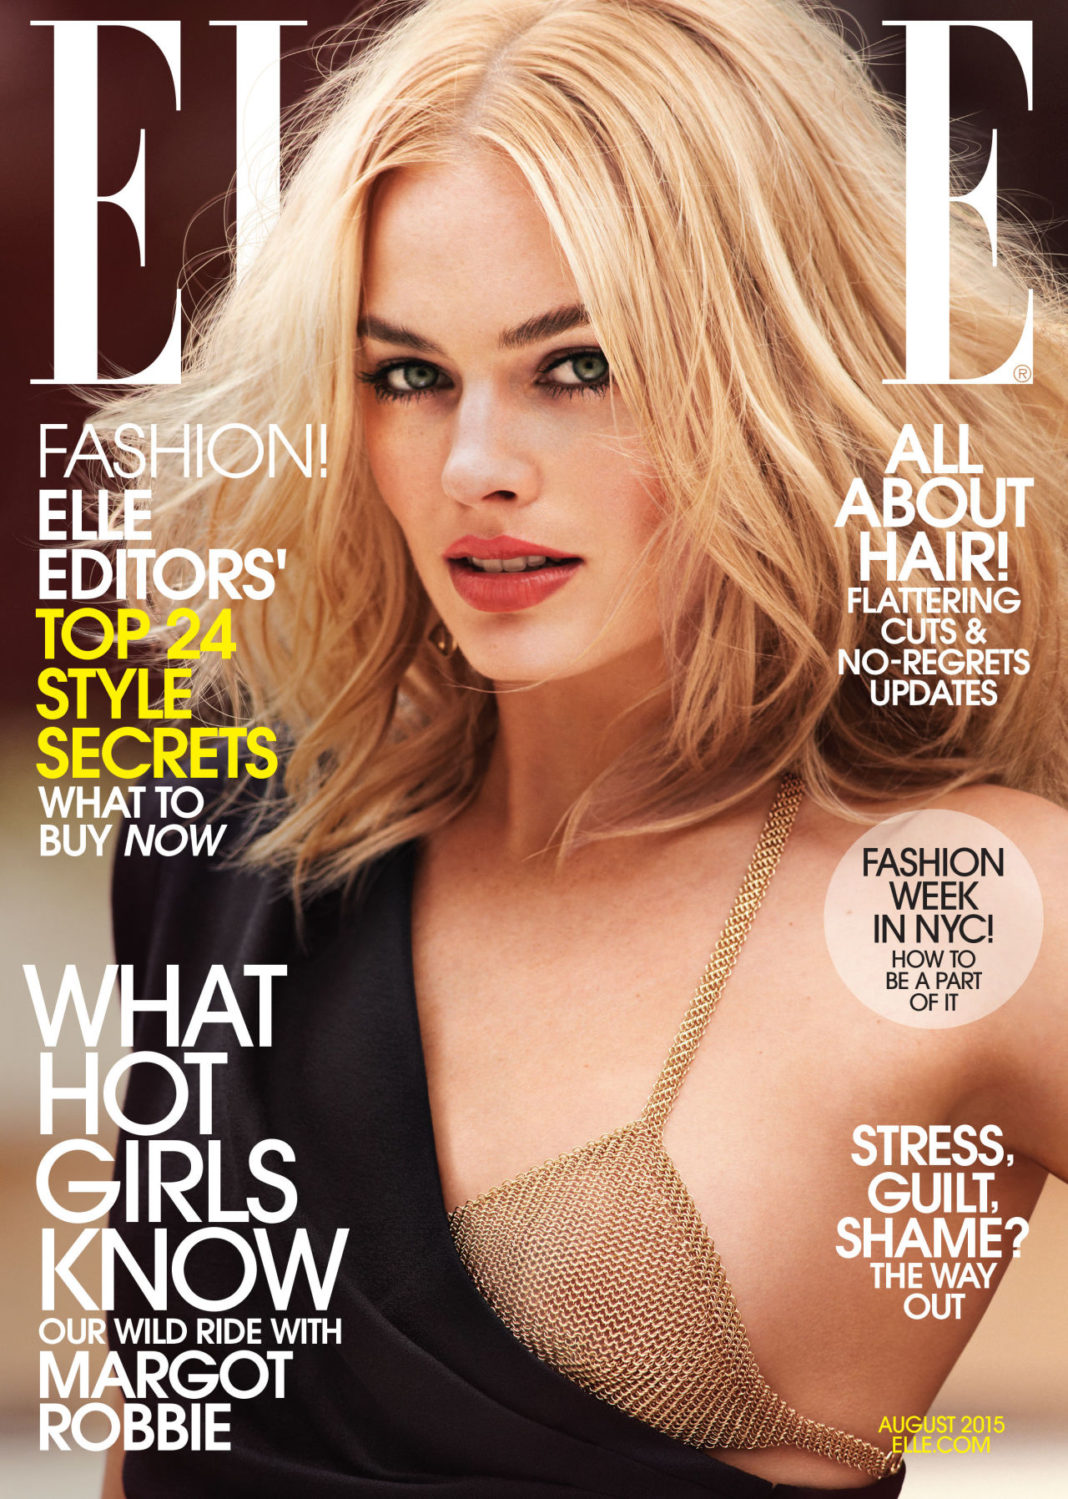 Elle Magazine August 2015 Cover Girl Margot Robbie